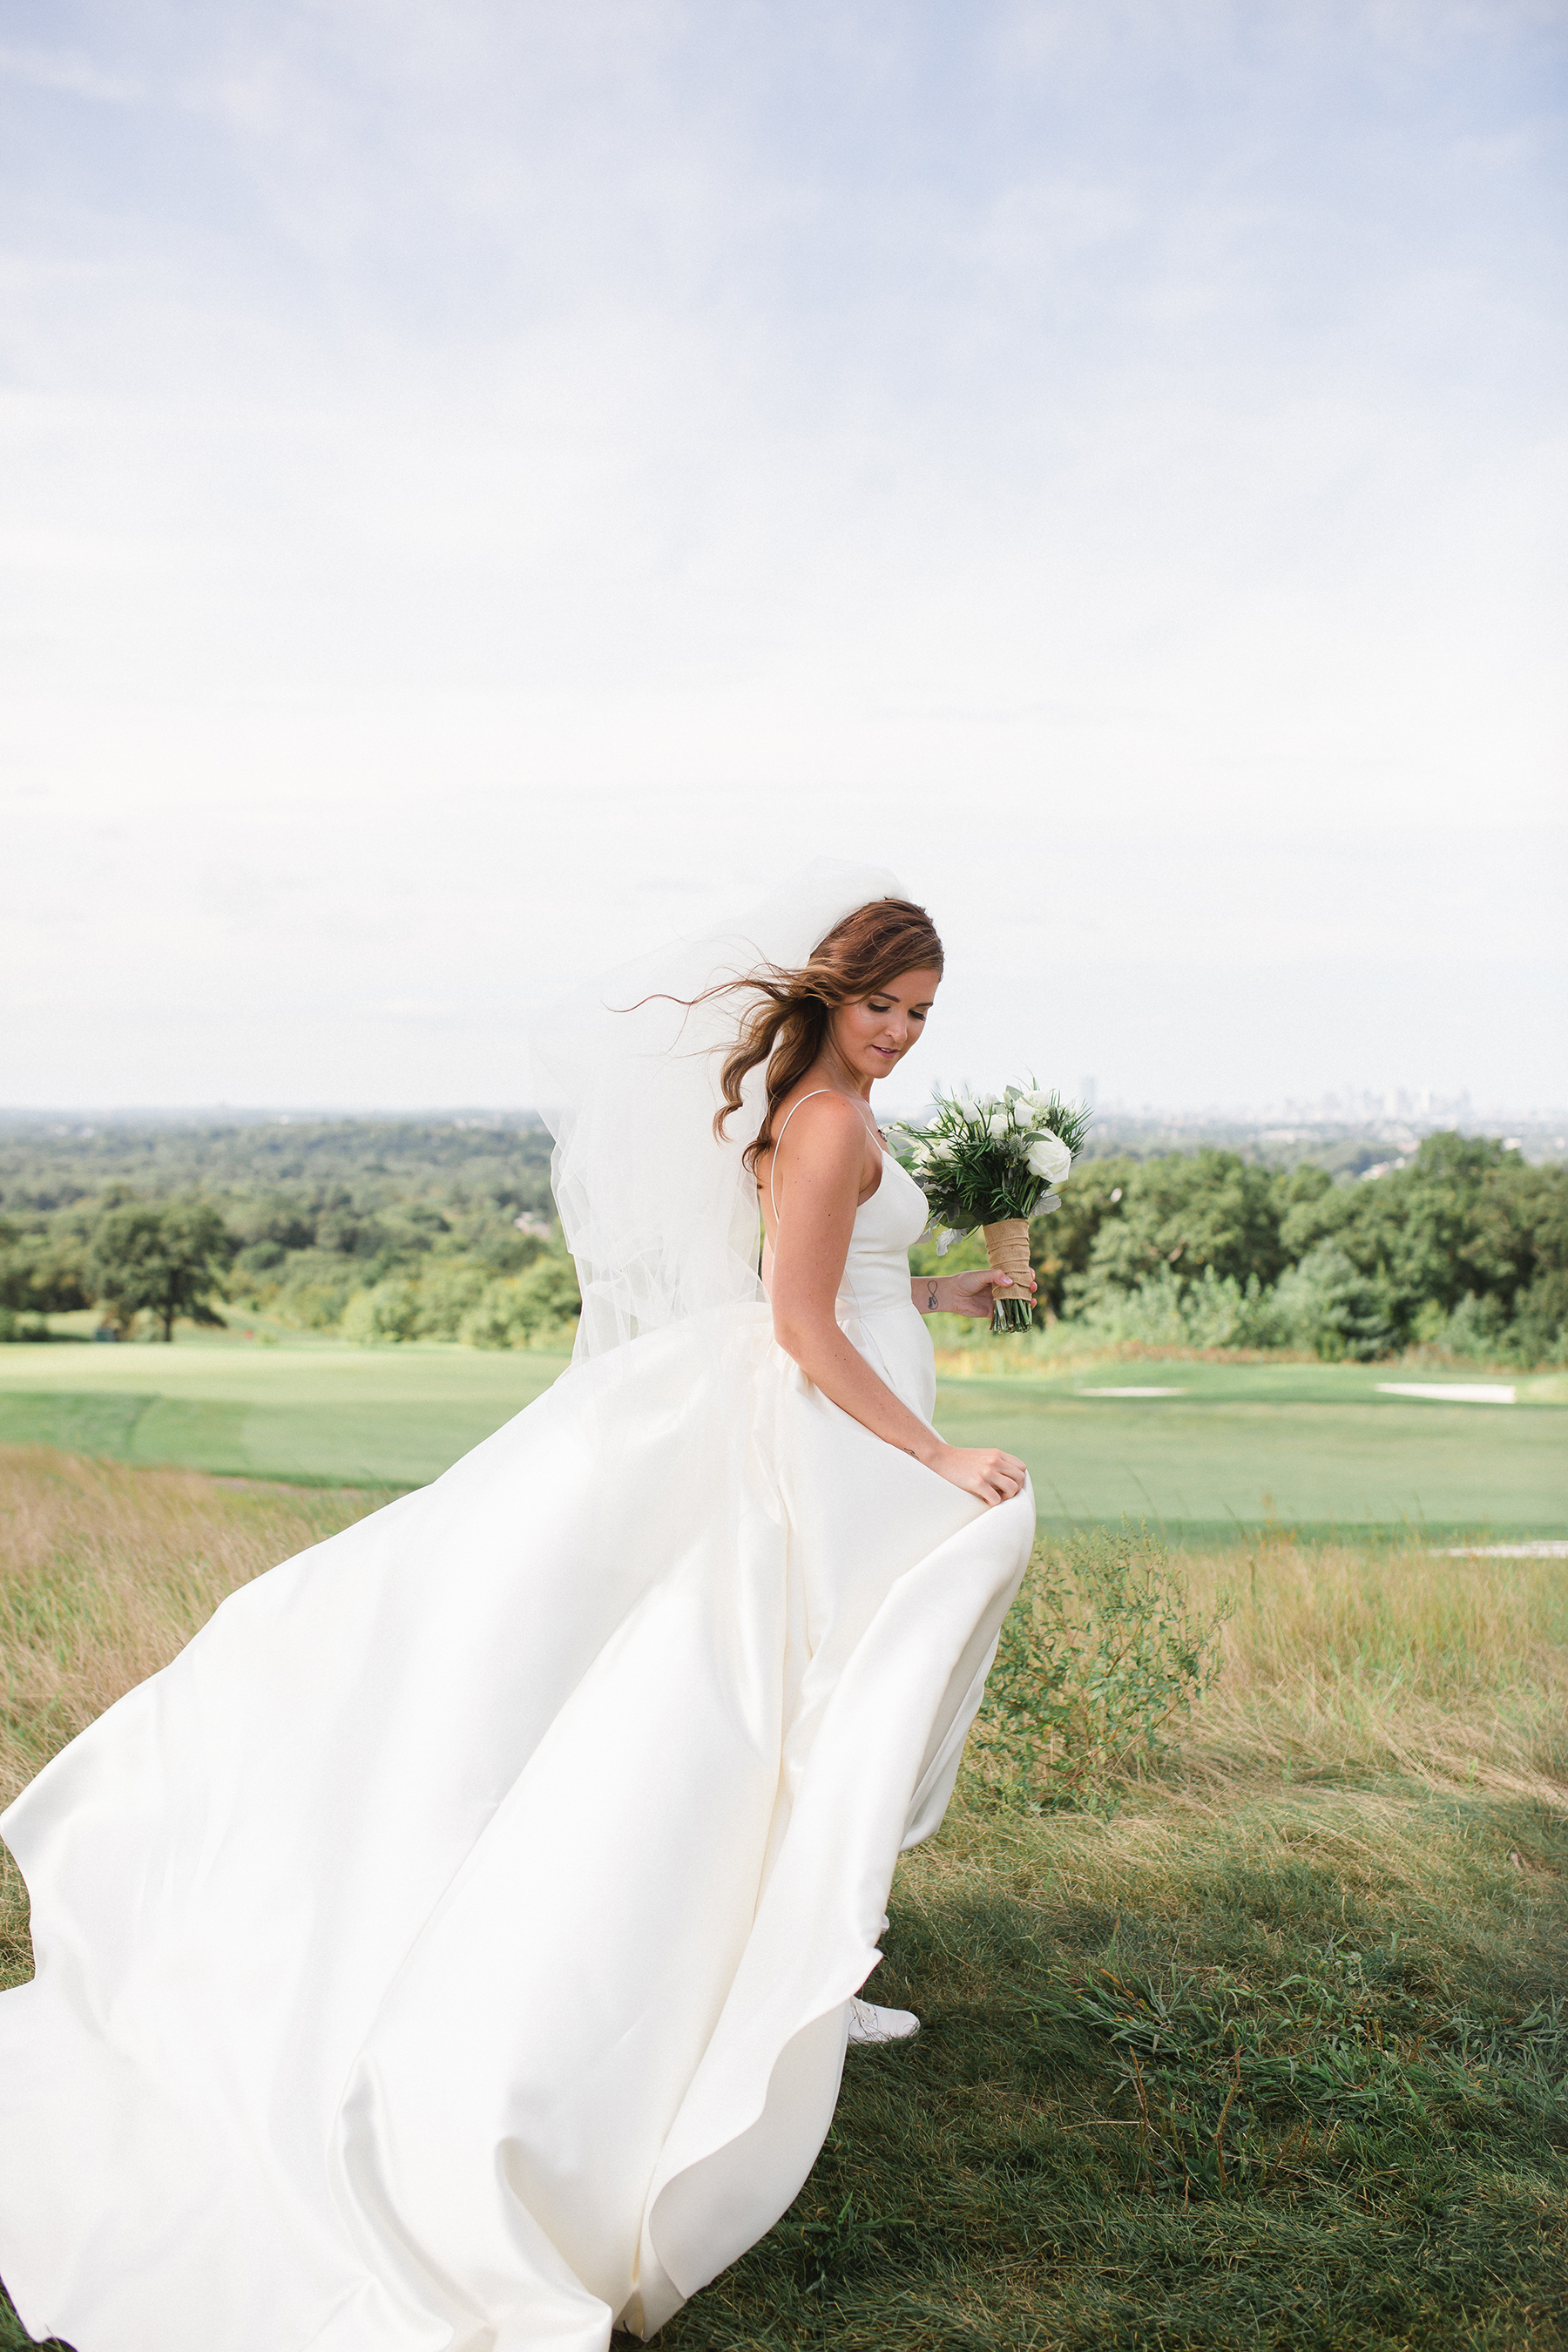 11-quincy-granite-links-wedding-boston.jpg